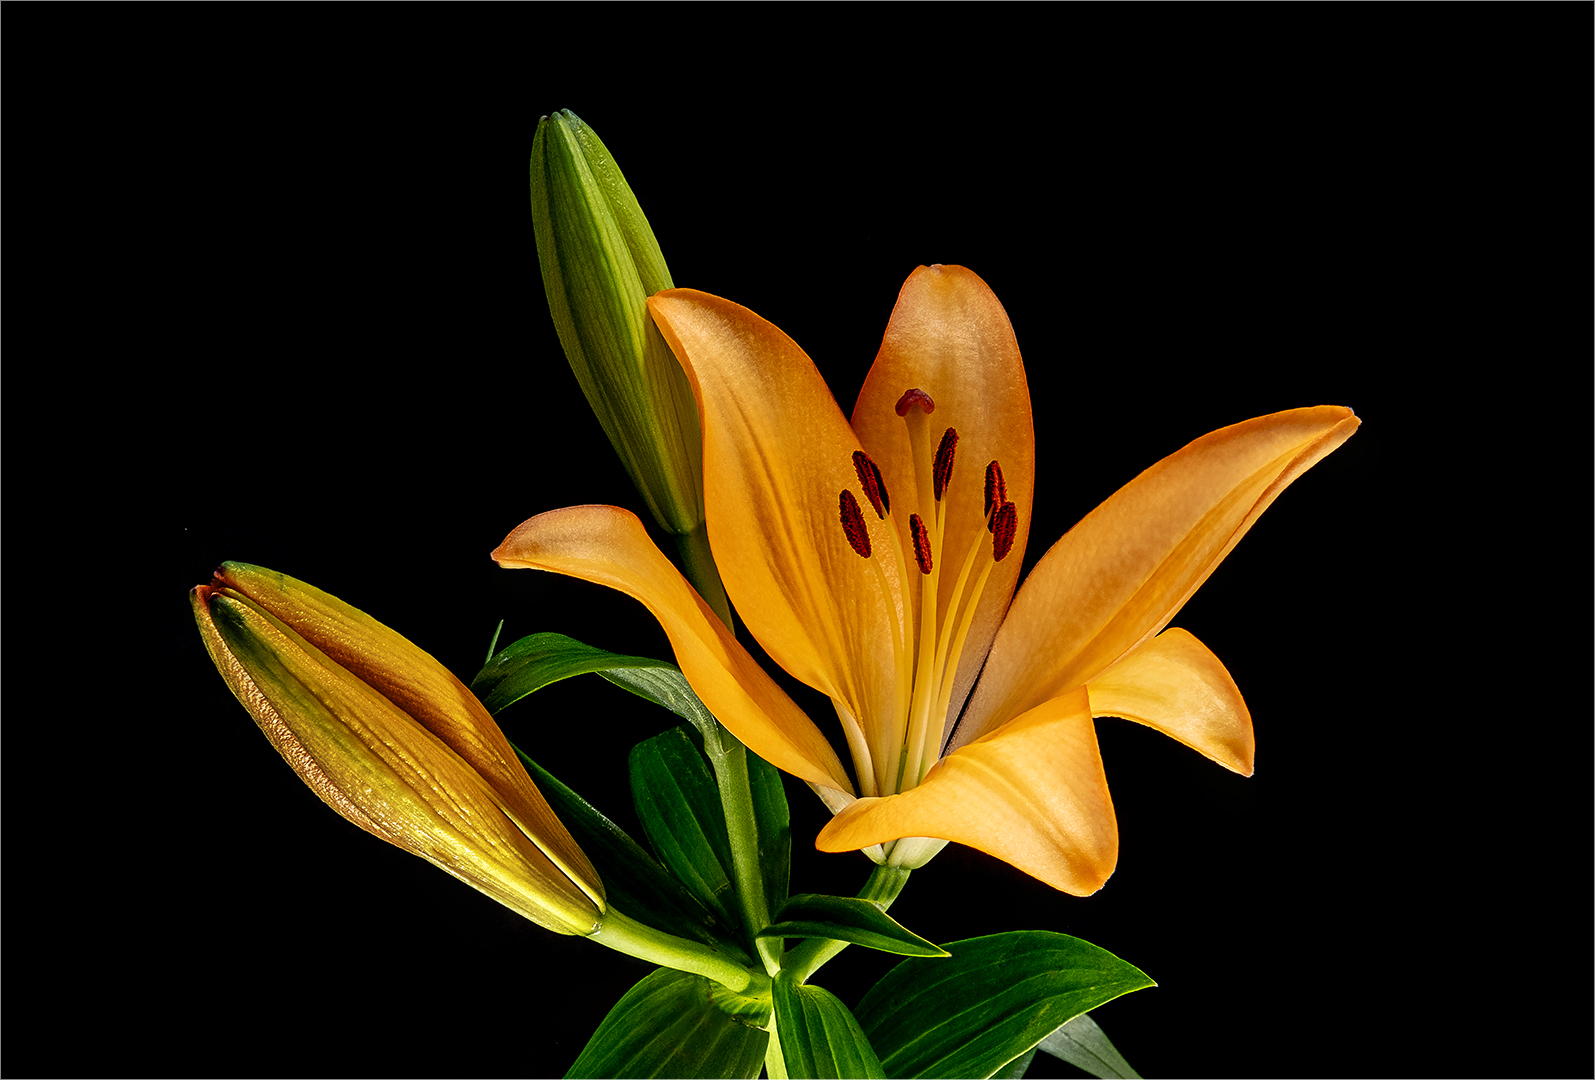 DS001-Lily-Rob Minter